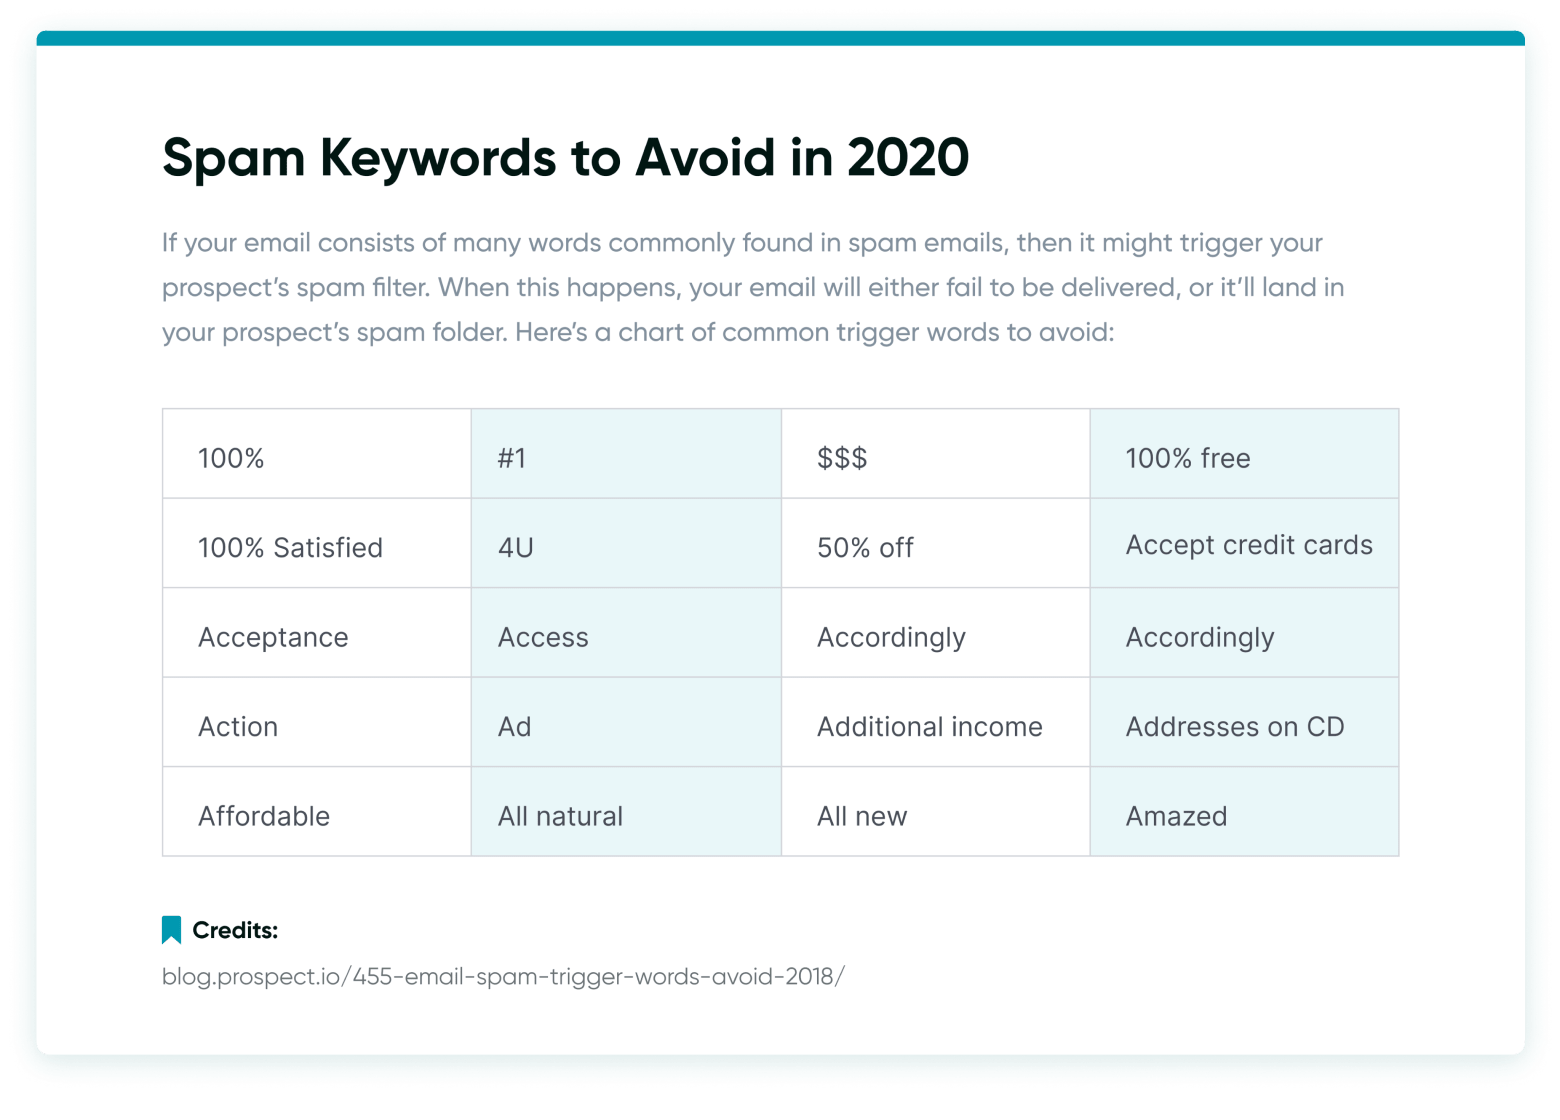 Spam keywords to avoid